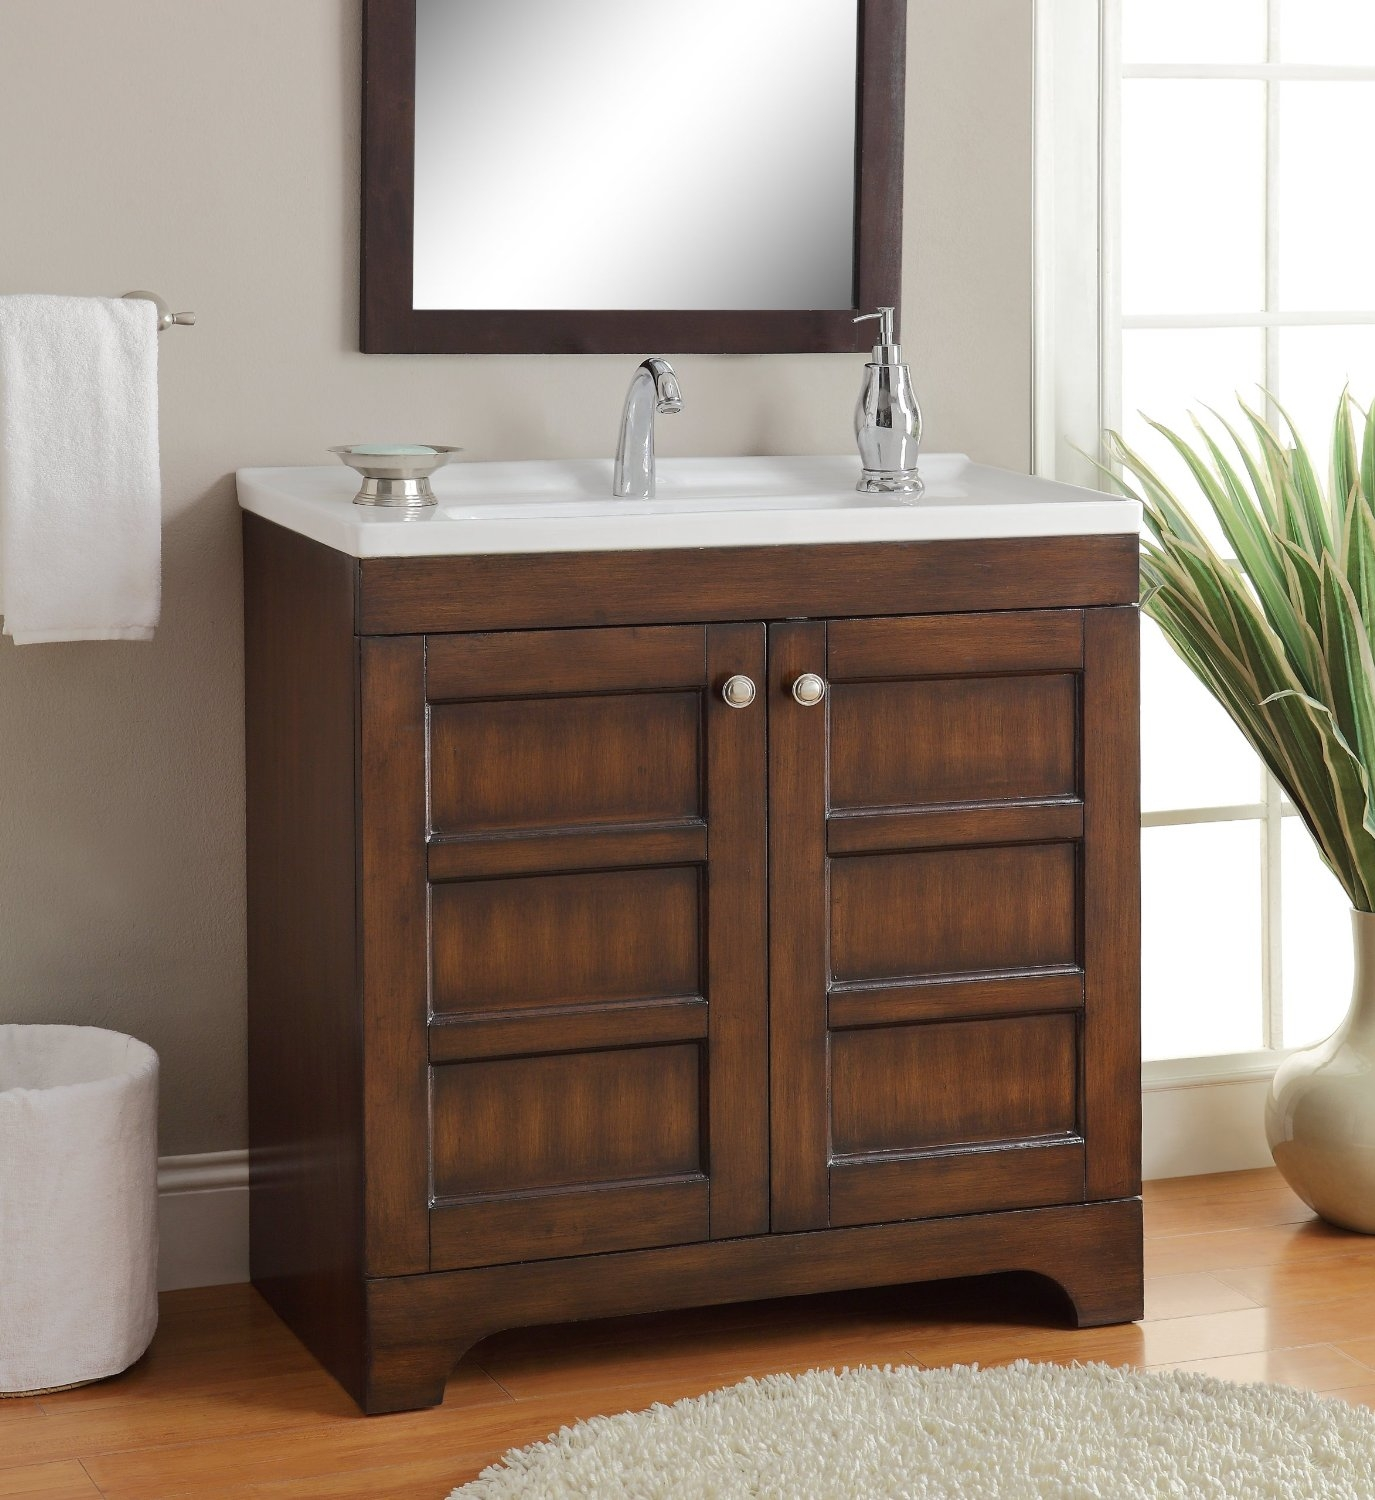 Bathroom Vanity Cabinets 32 Inch32 inch bathroom vanity with drawers